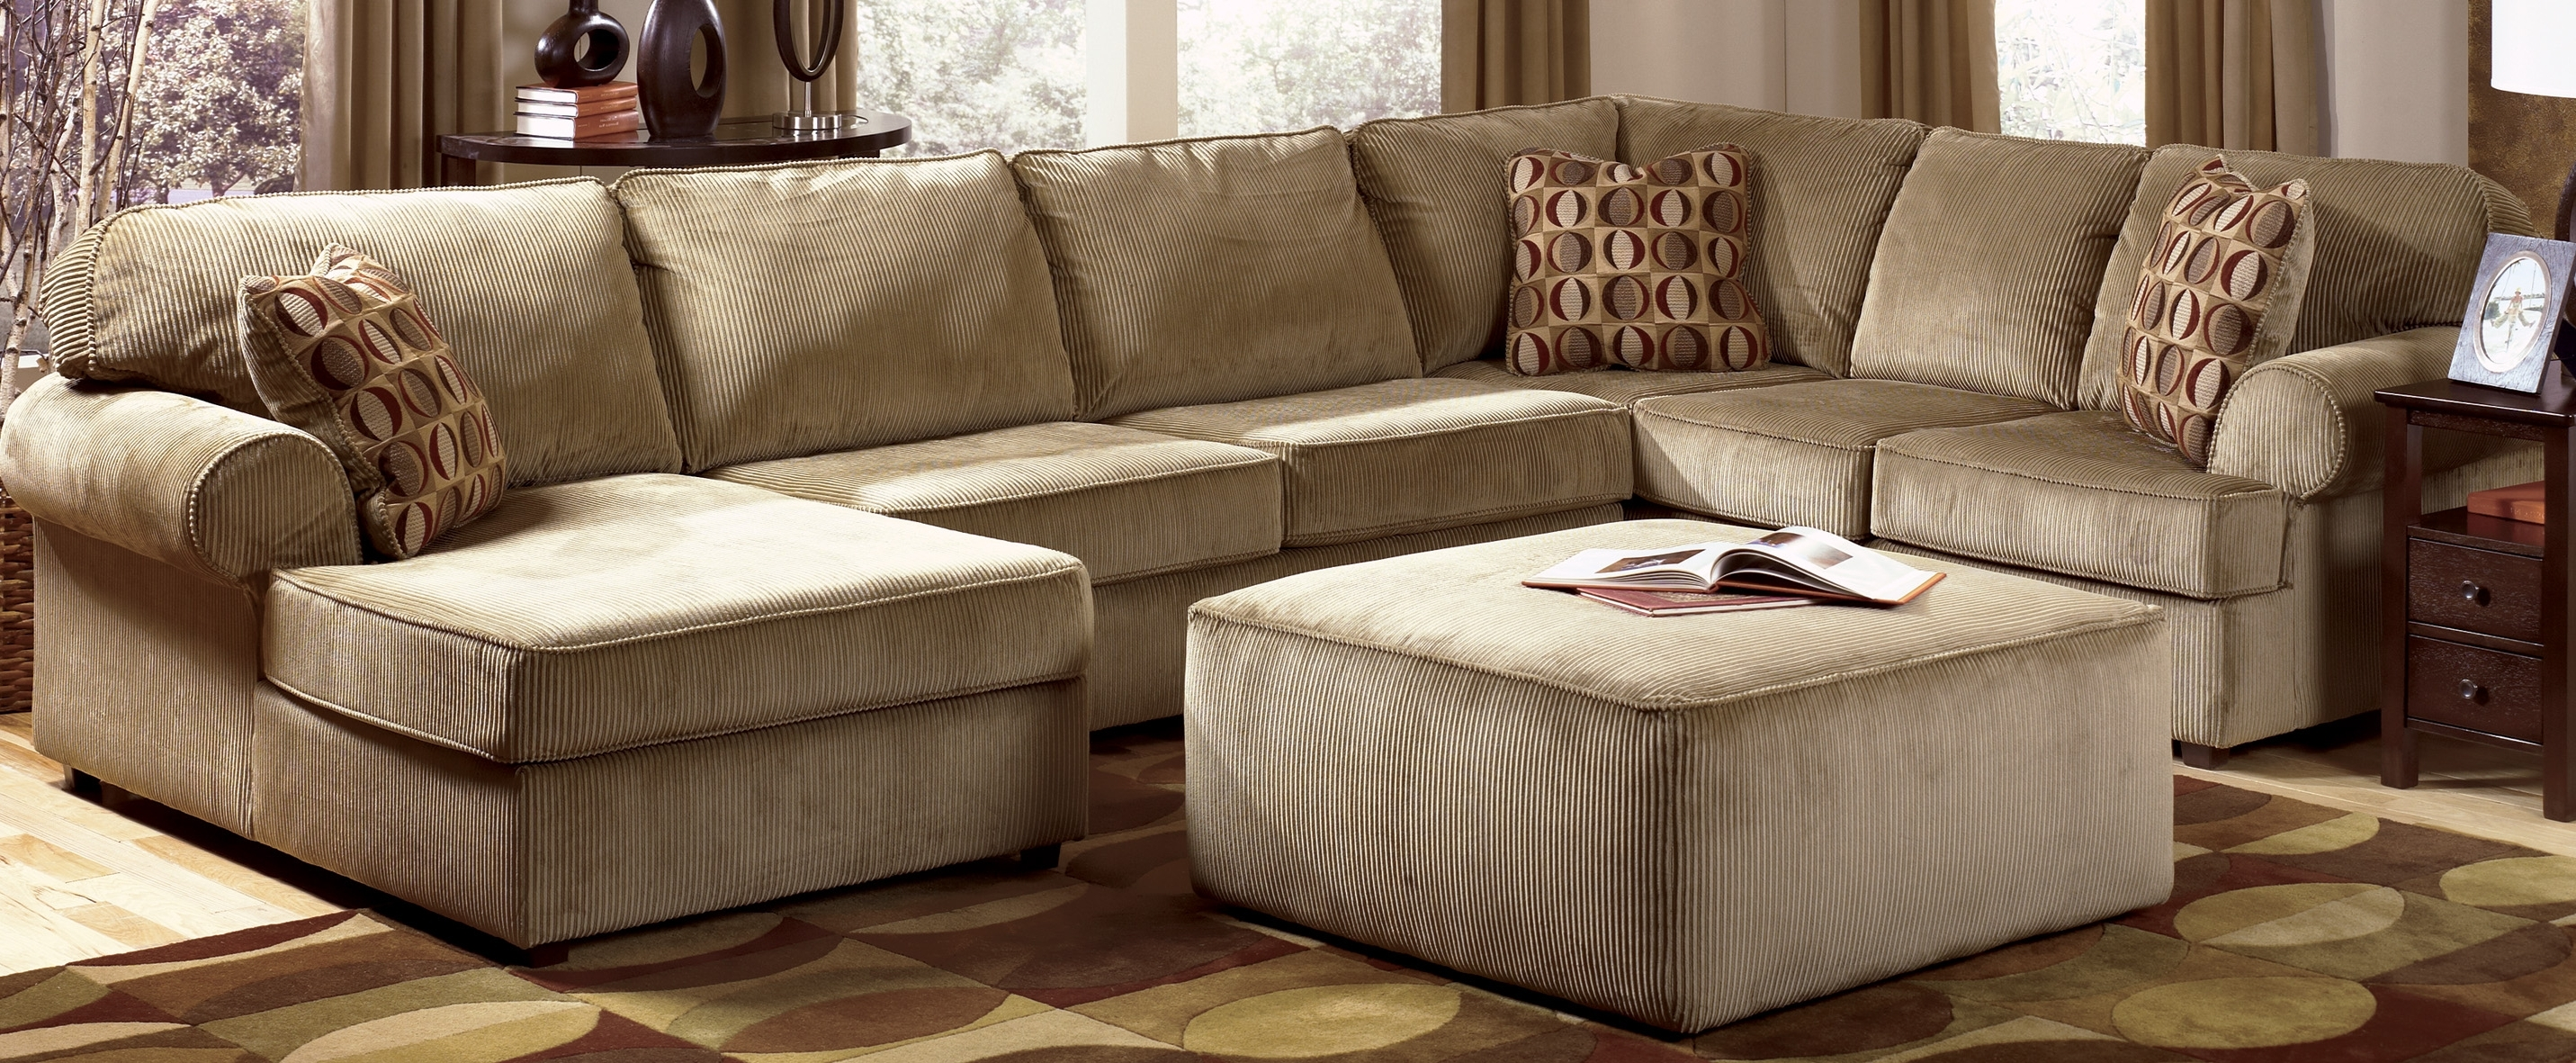 Raleigh Nc Sectional Sofas With Regard To Most Up To Date Sectional Sofa Design: Cheap Sofa Sectionals Brilliant Ideas Cheap (View 4 of 20)